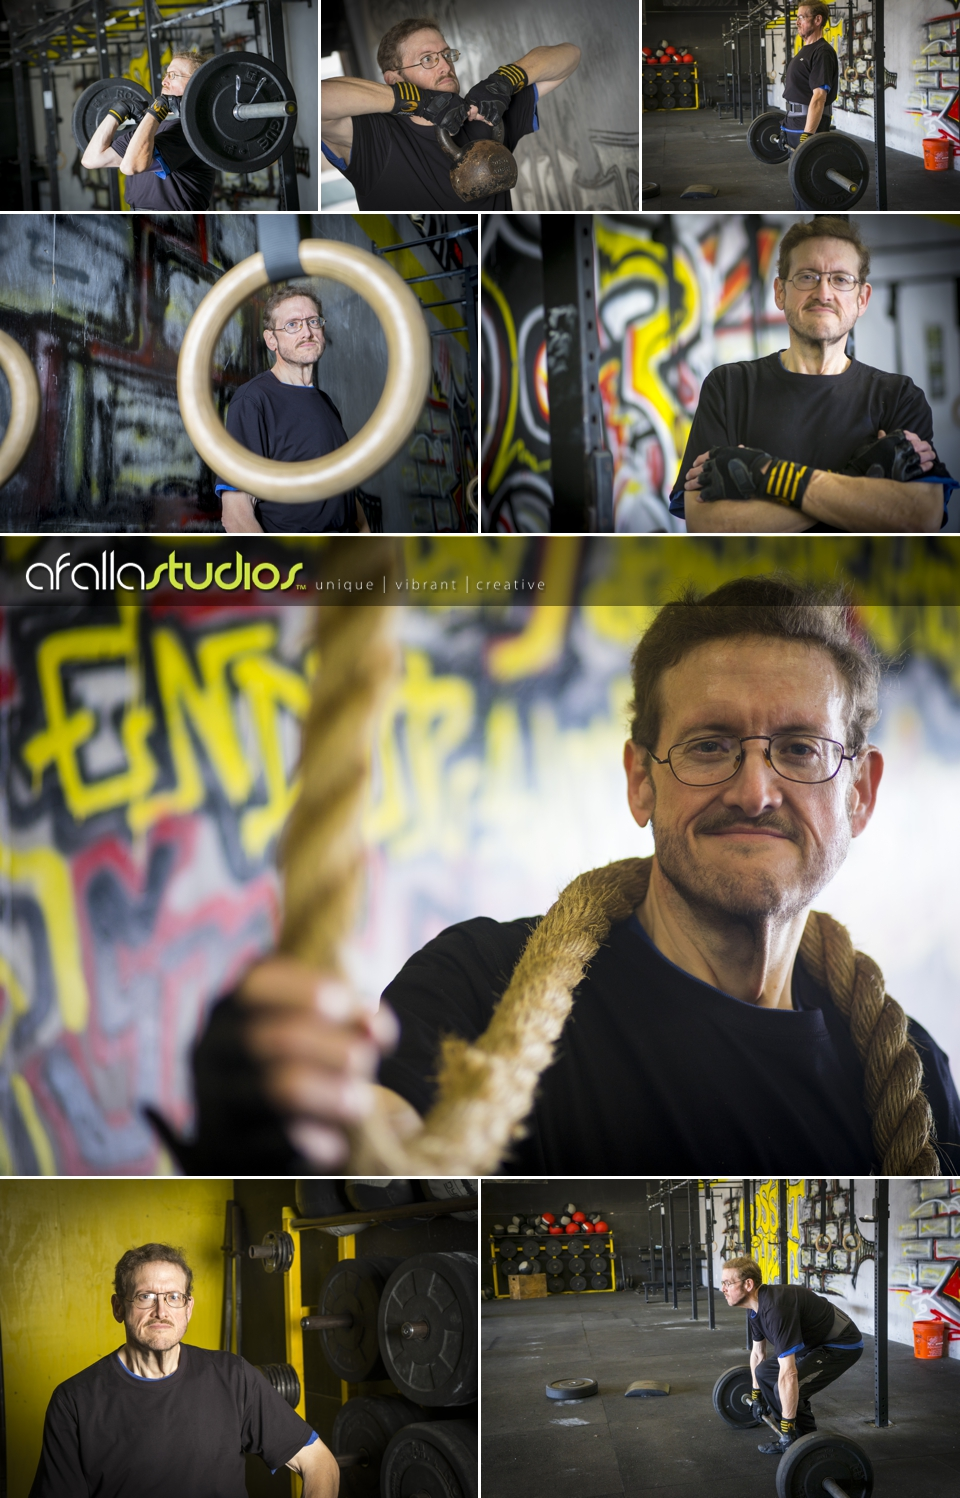 Images of Scott Aldridge. Copyright AfallaStudios 2014